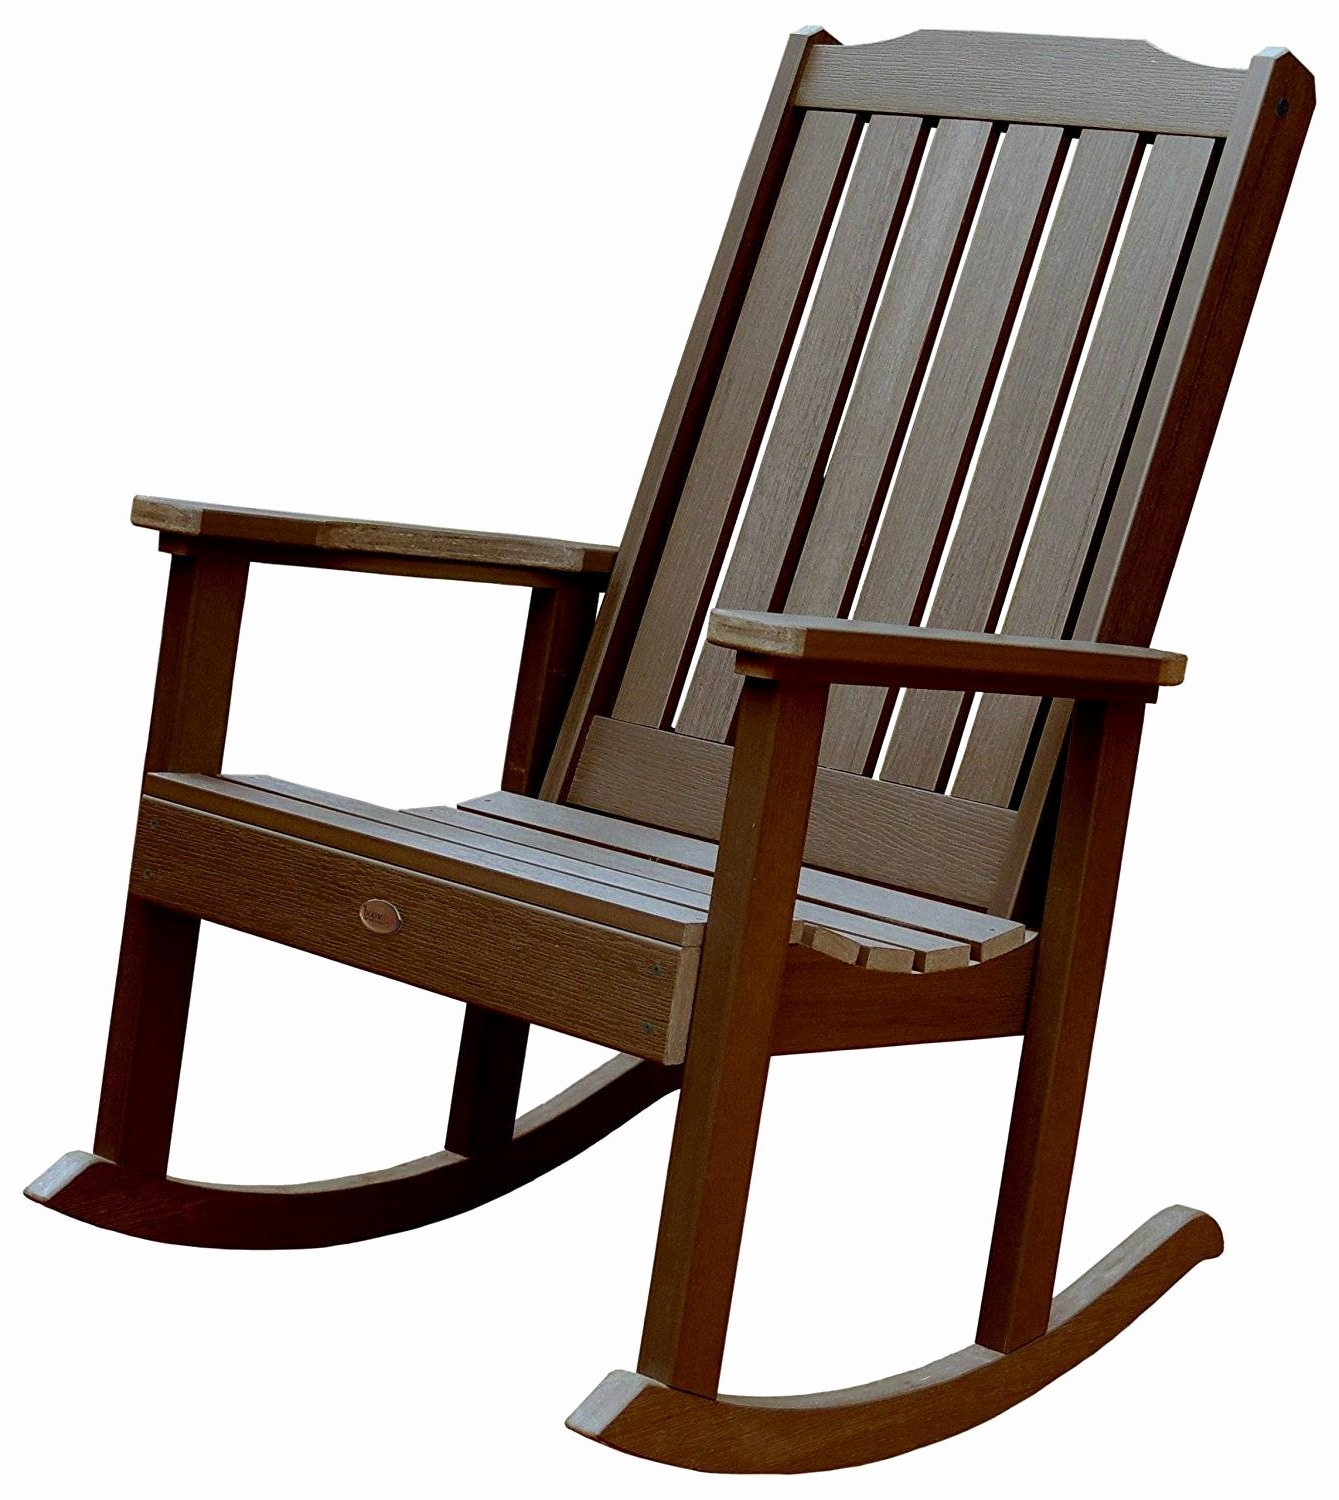 Most Recent Wicker Rocking Chair Set New 3 Piece Bistro Set Furniture Patio With Stackable Patio Rocking Chairs (View 9 of 20)